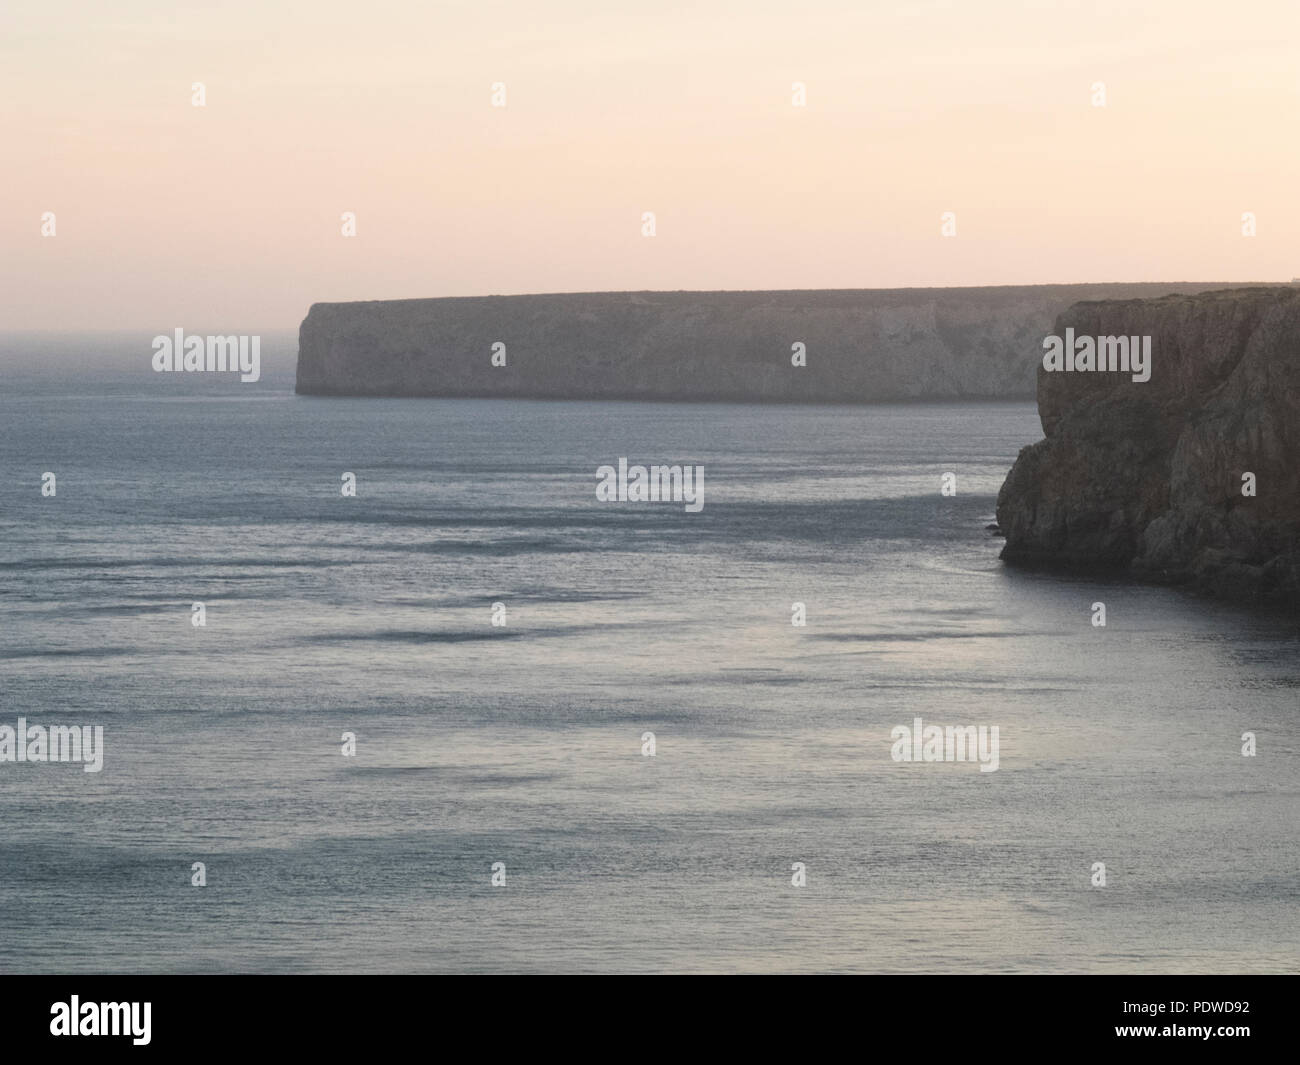 solitary beach during the early sunrise morning. noone walking out there, silence and peace feeling - Stock Image